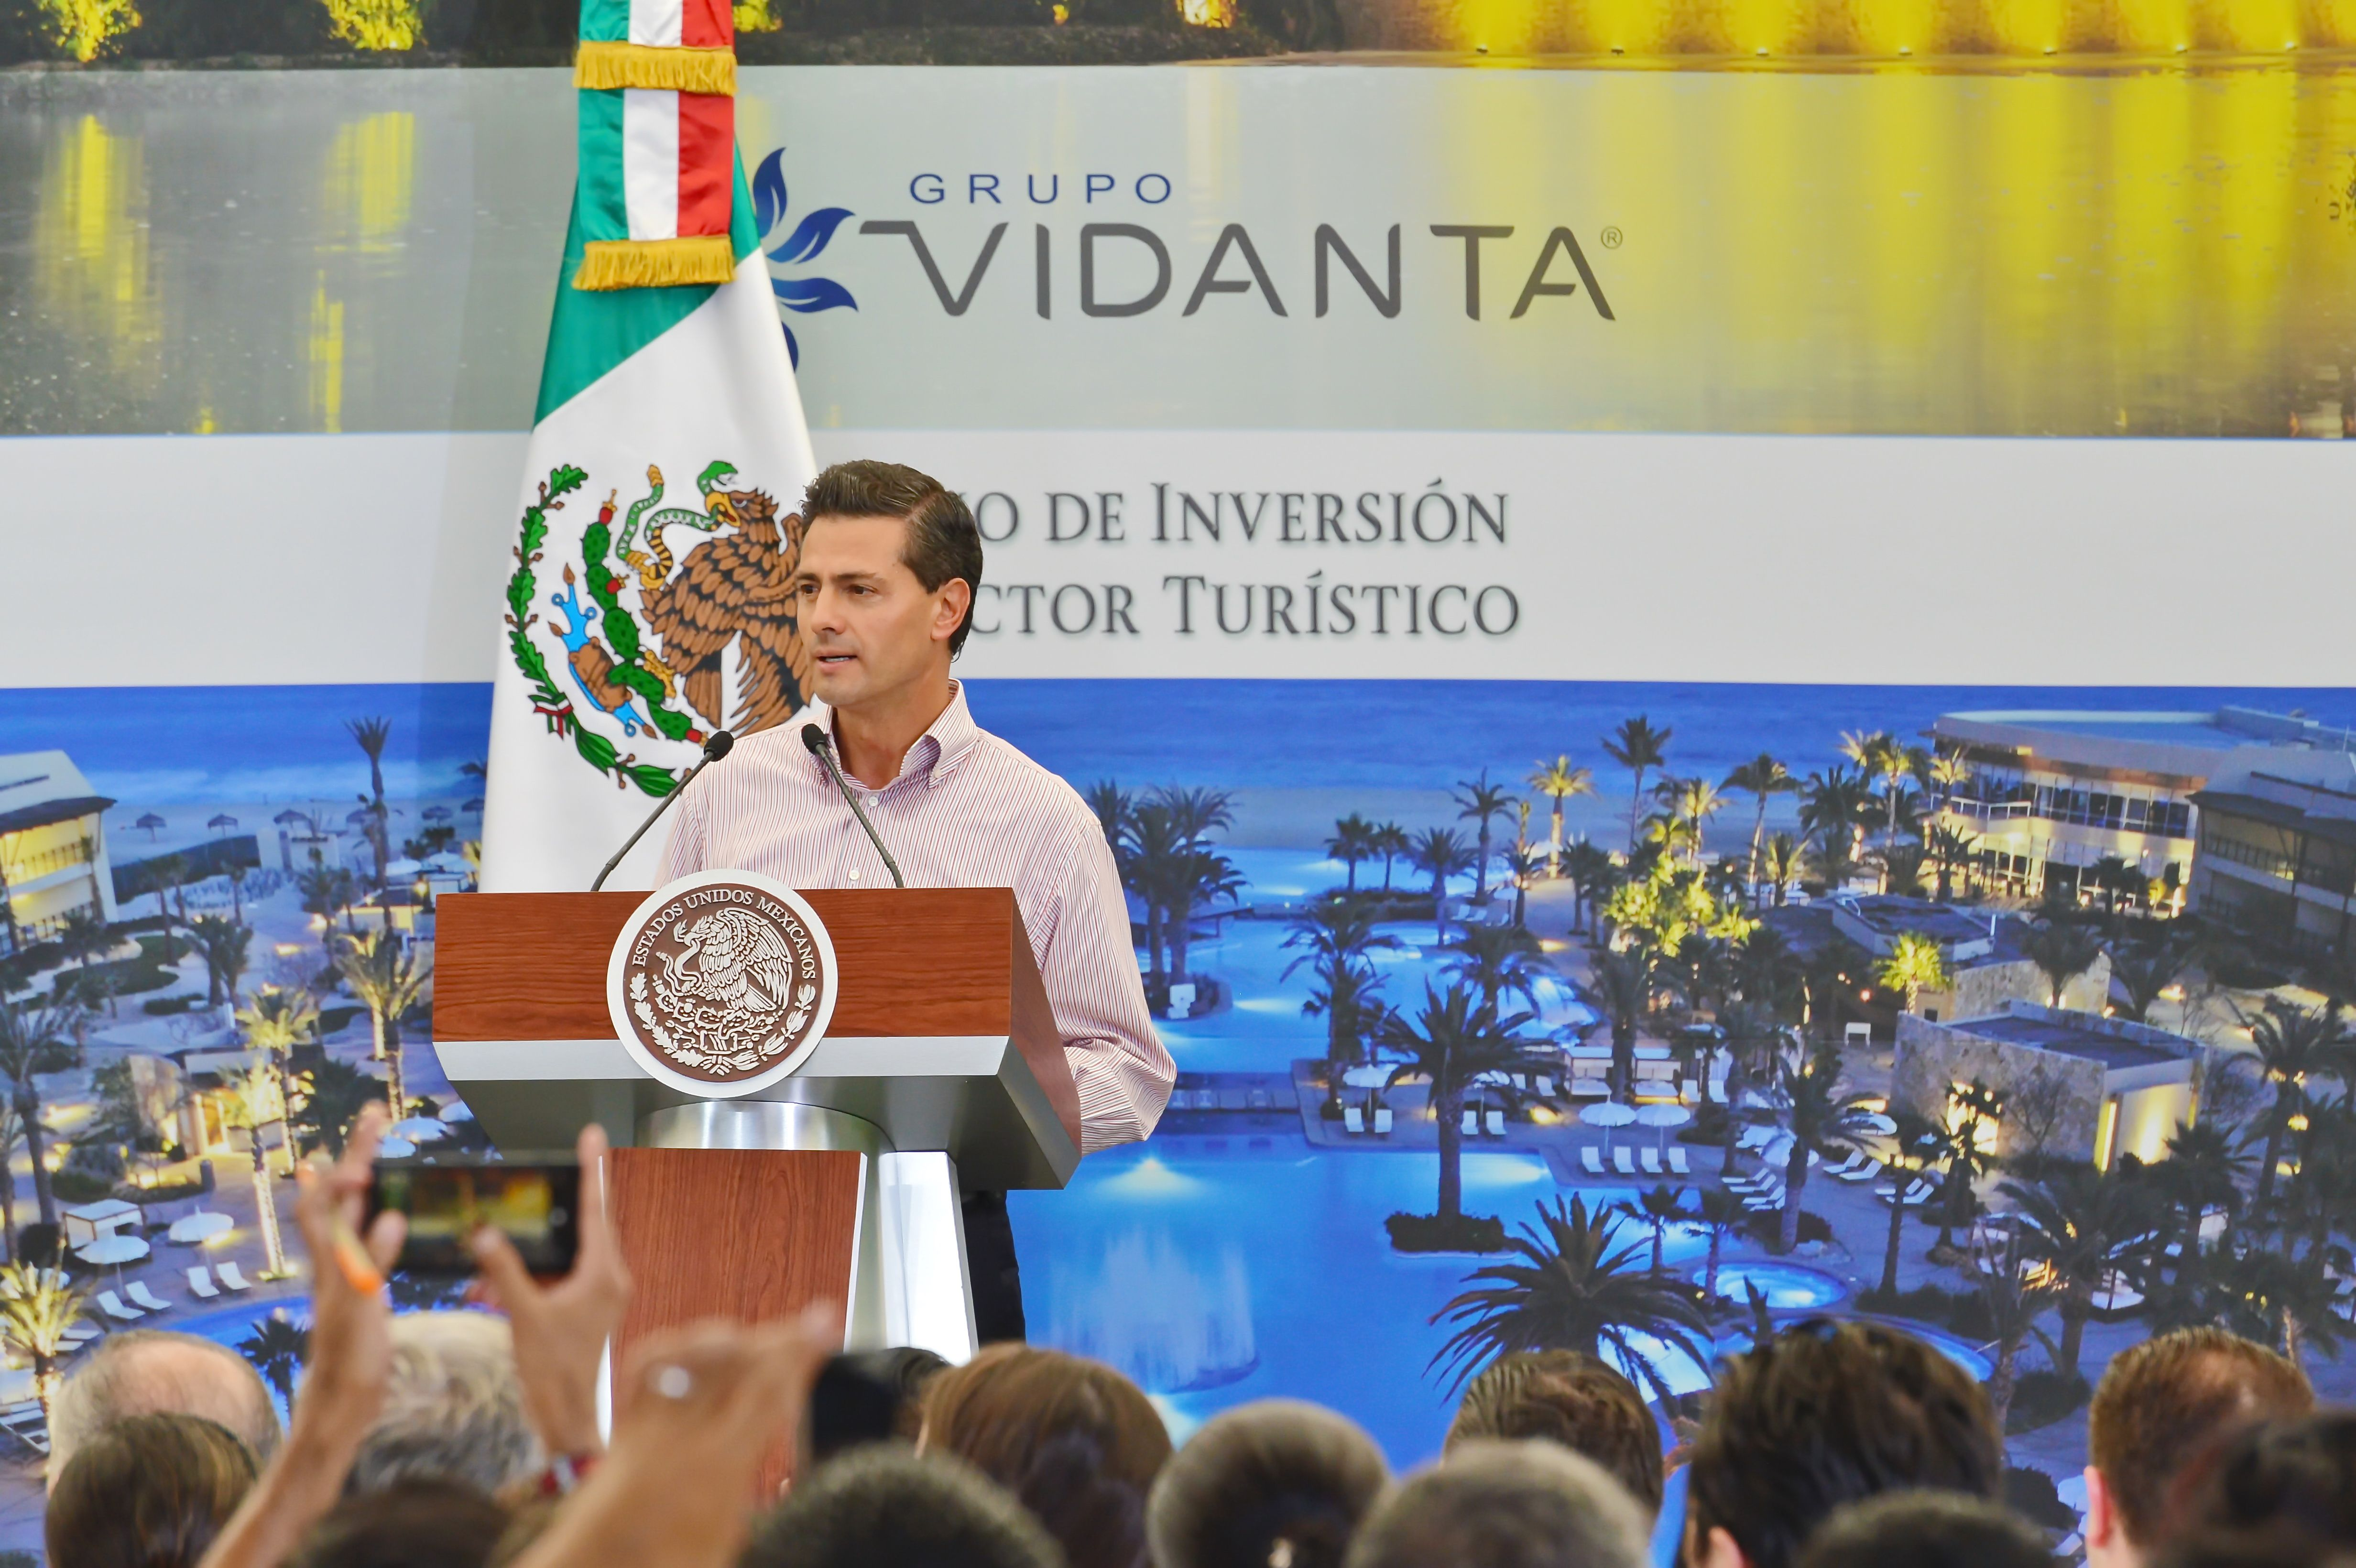 Mexico President Enrique Pena Nieto Applauds Grupo Vidanta for $1.3 Billion... -- RIVIERA MAYA, Mexico, April 10, 2015 /PRNewswire/ --